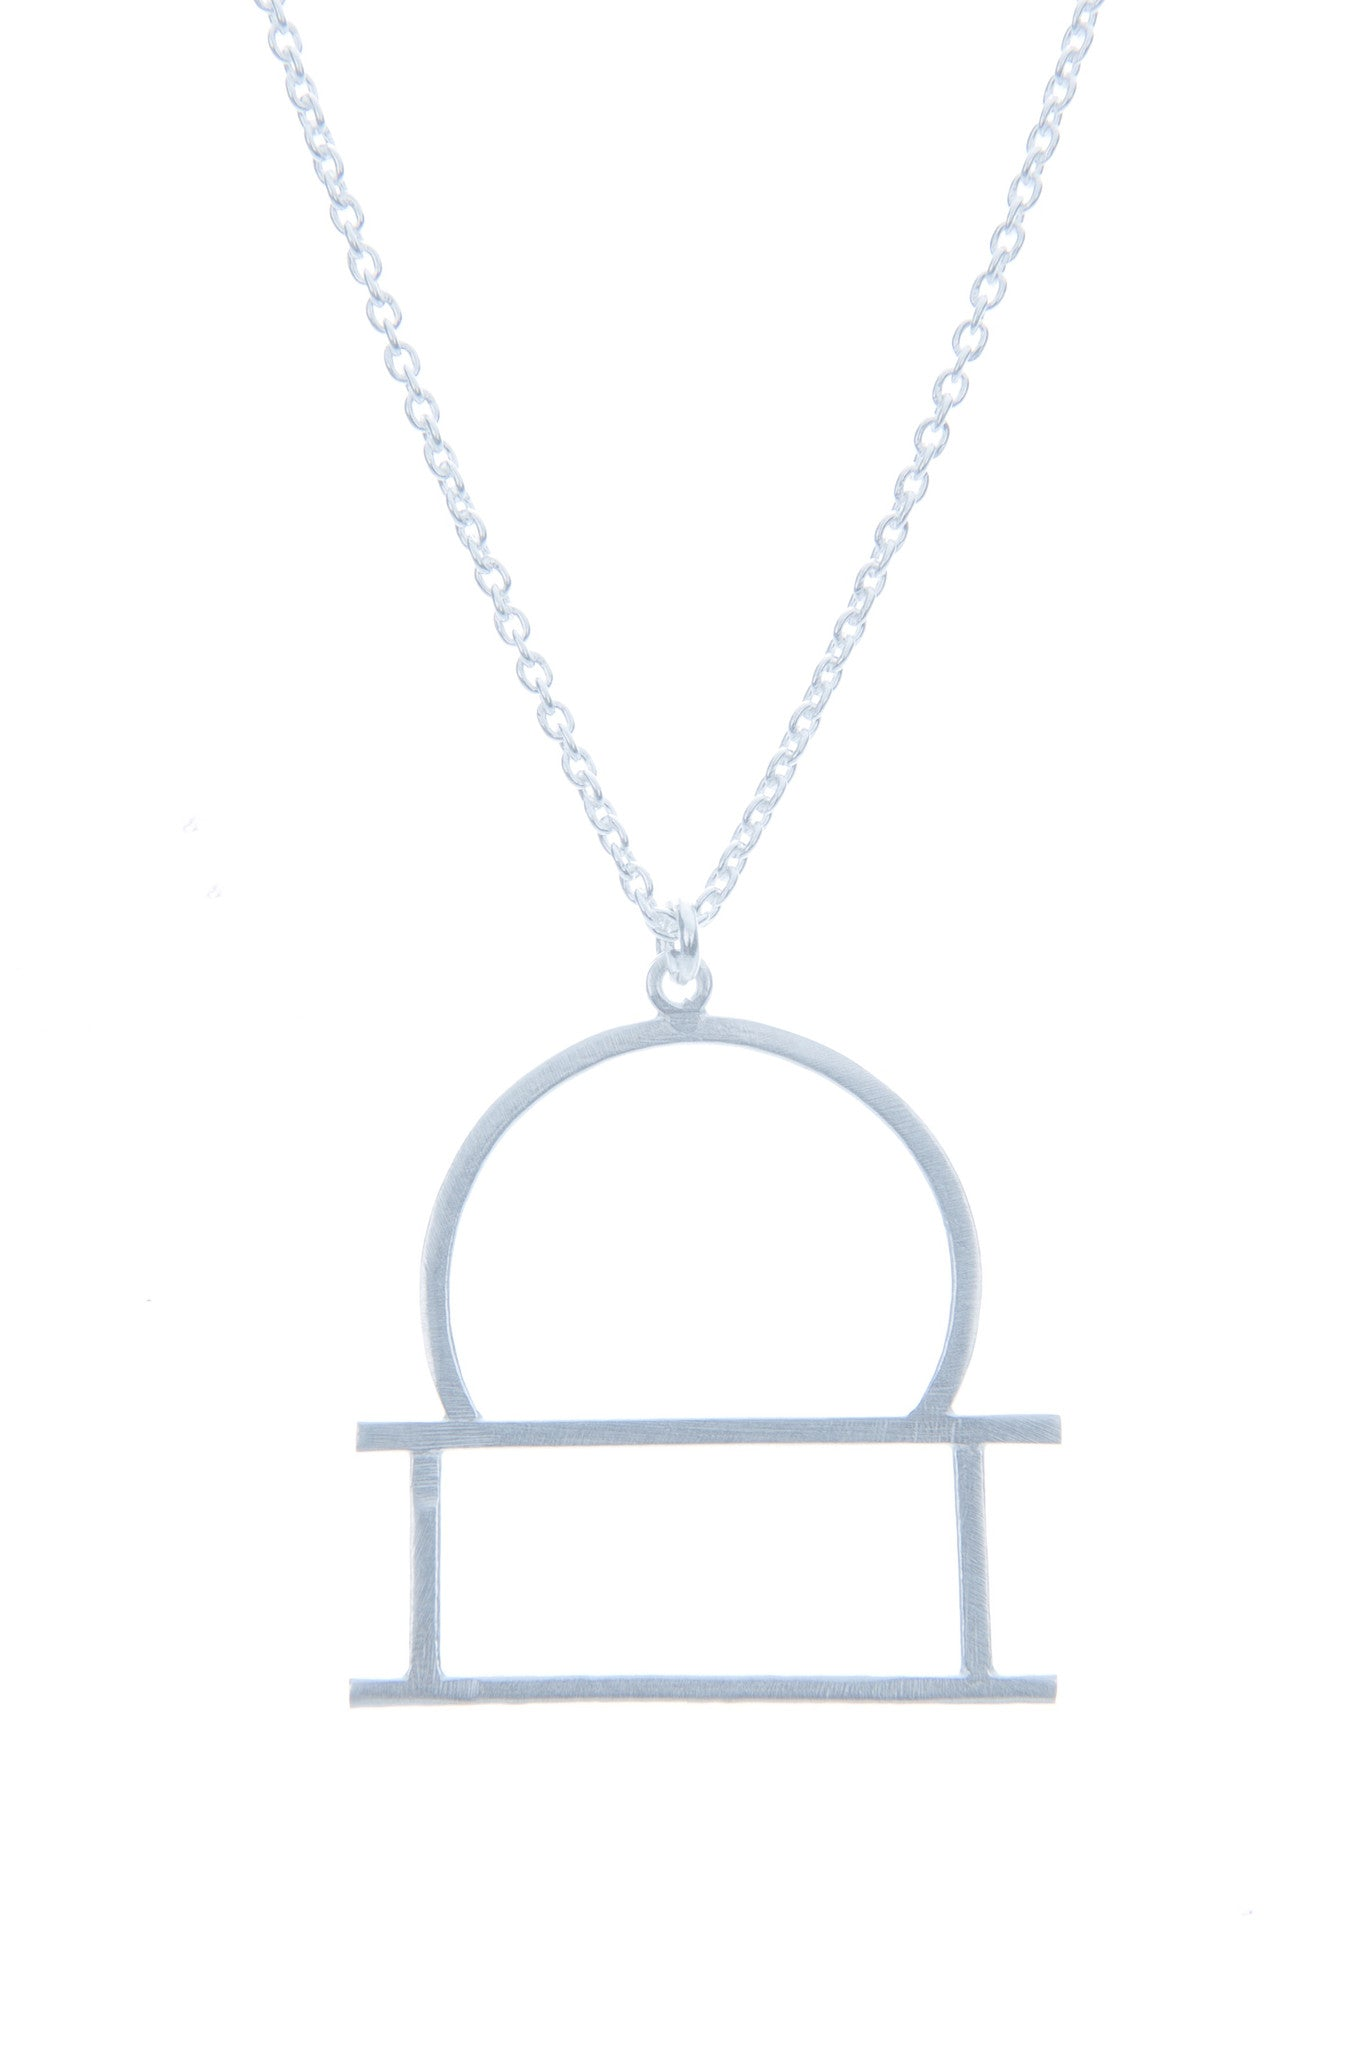 Libra Zodiac White Gold Necklace - Lulugem.com